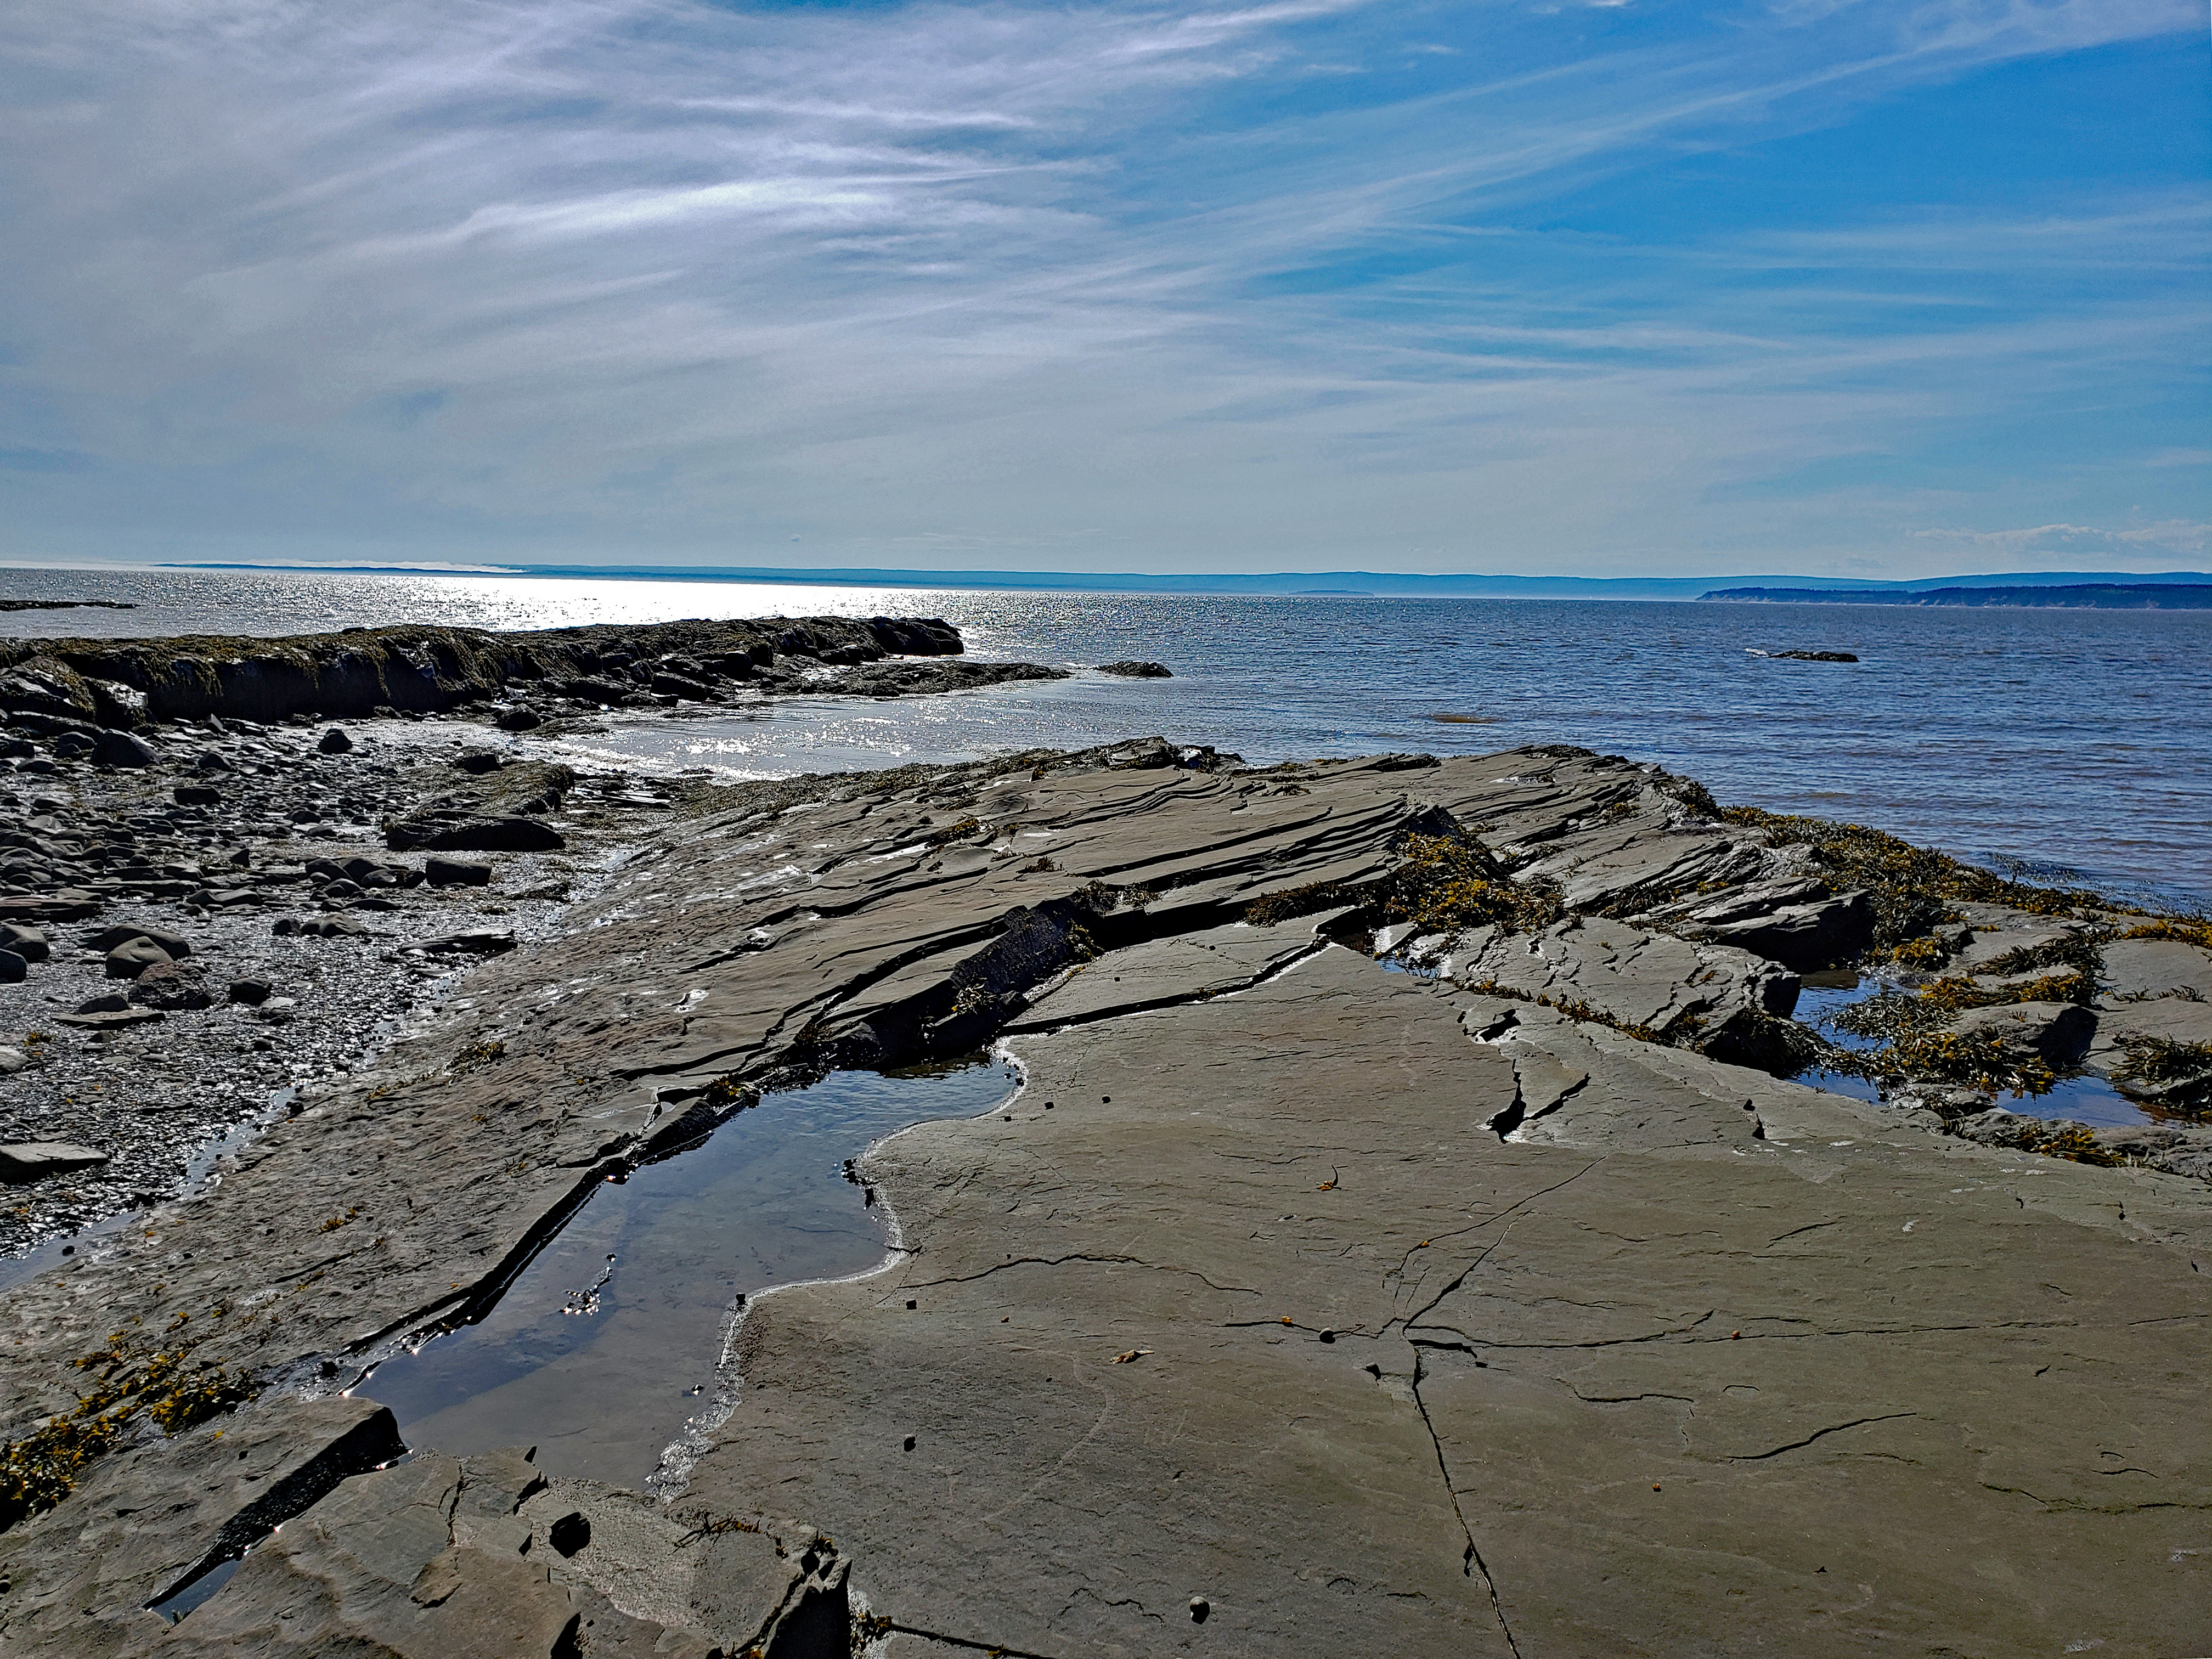 "<p>Bay of Fundy, Joggins, NS</p><p class=""lightbox-share""><span>Share: </span><a class=""lightbox-fb"" href=""javascript:void(0);"">Facebook</a><a class=""lightbox-twit"" href=""https://twitter.com/home?status=I%20voted%20for%20Fundy%20Reefs%20in%20the%20Cornice%20Calendar%20Contest.%20Choose%20your%20favourite%206%20photos:%20http://ow.ly/yCSmZ"" target=""_blank"">Twitter</a></p><input type=hidden class=voteid value=1890 />"